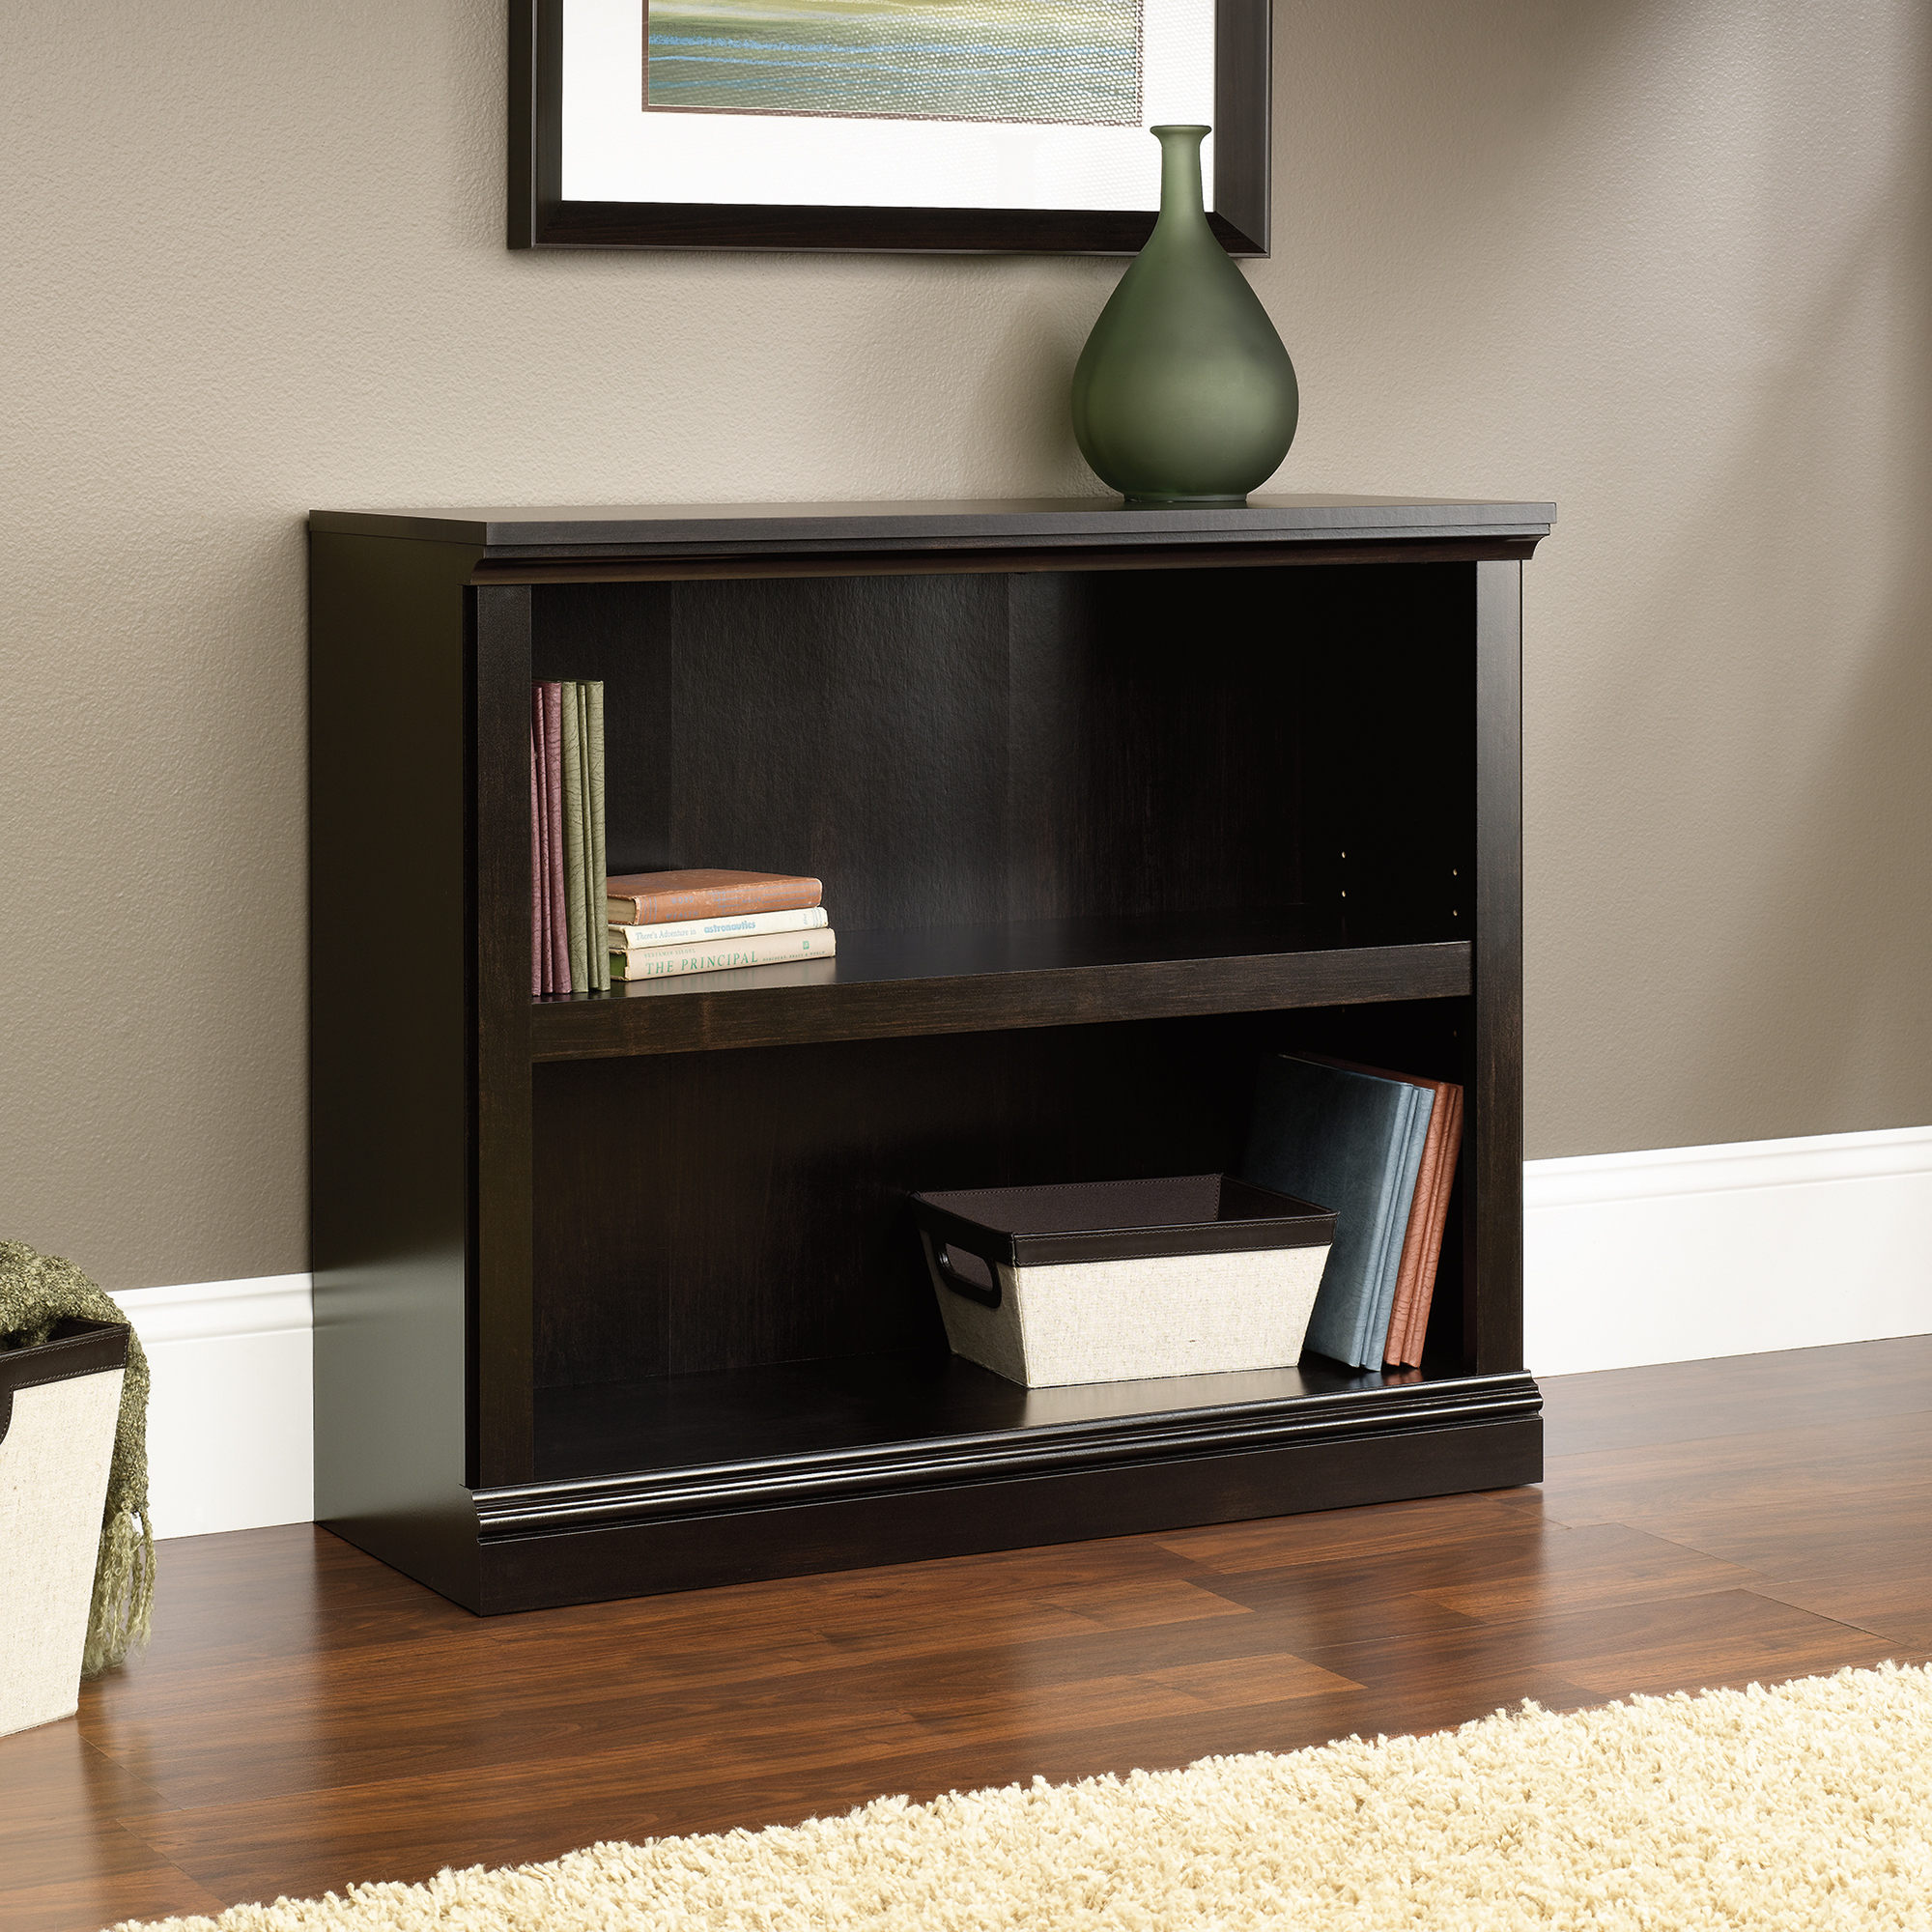 Best 2-Shelf Bookcase ... sauder 2 shelf bookcase